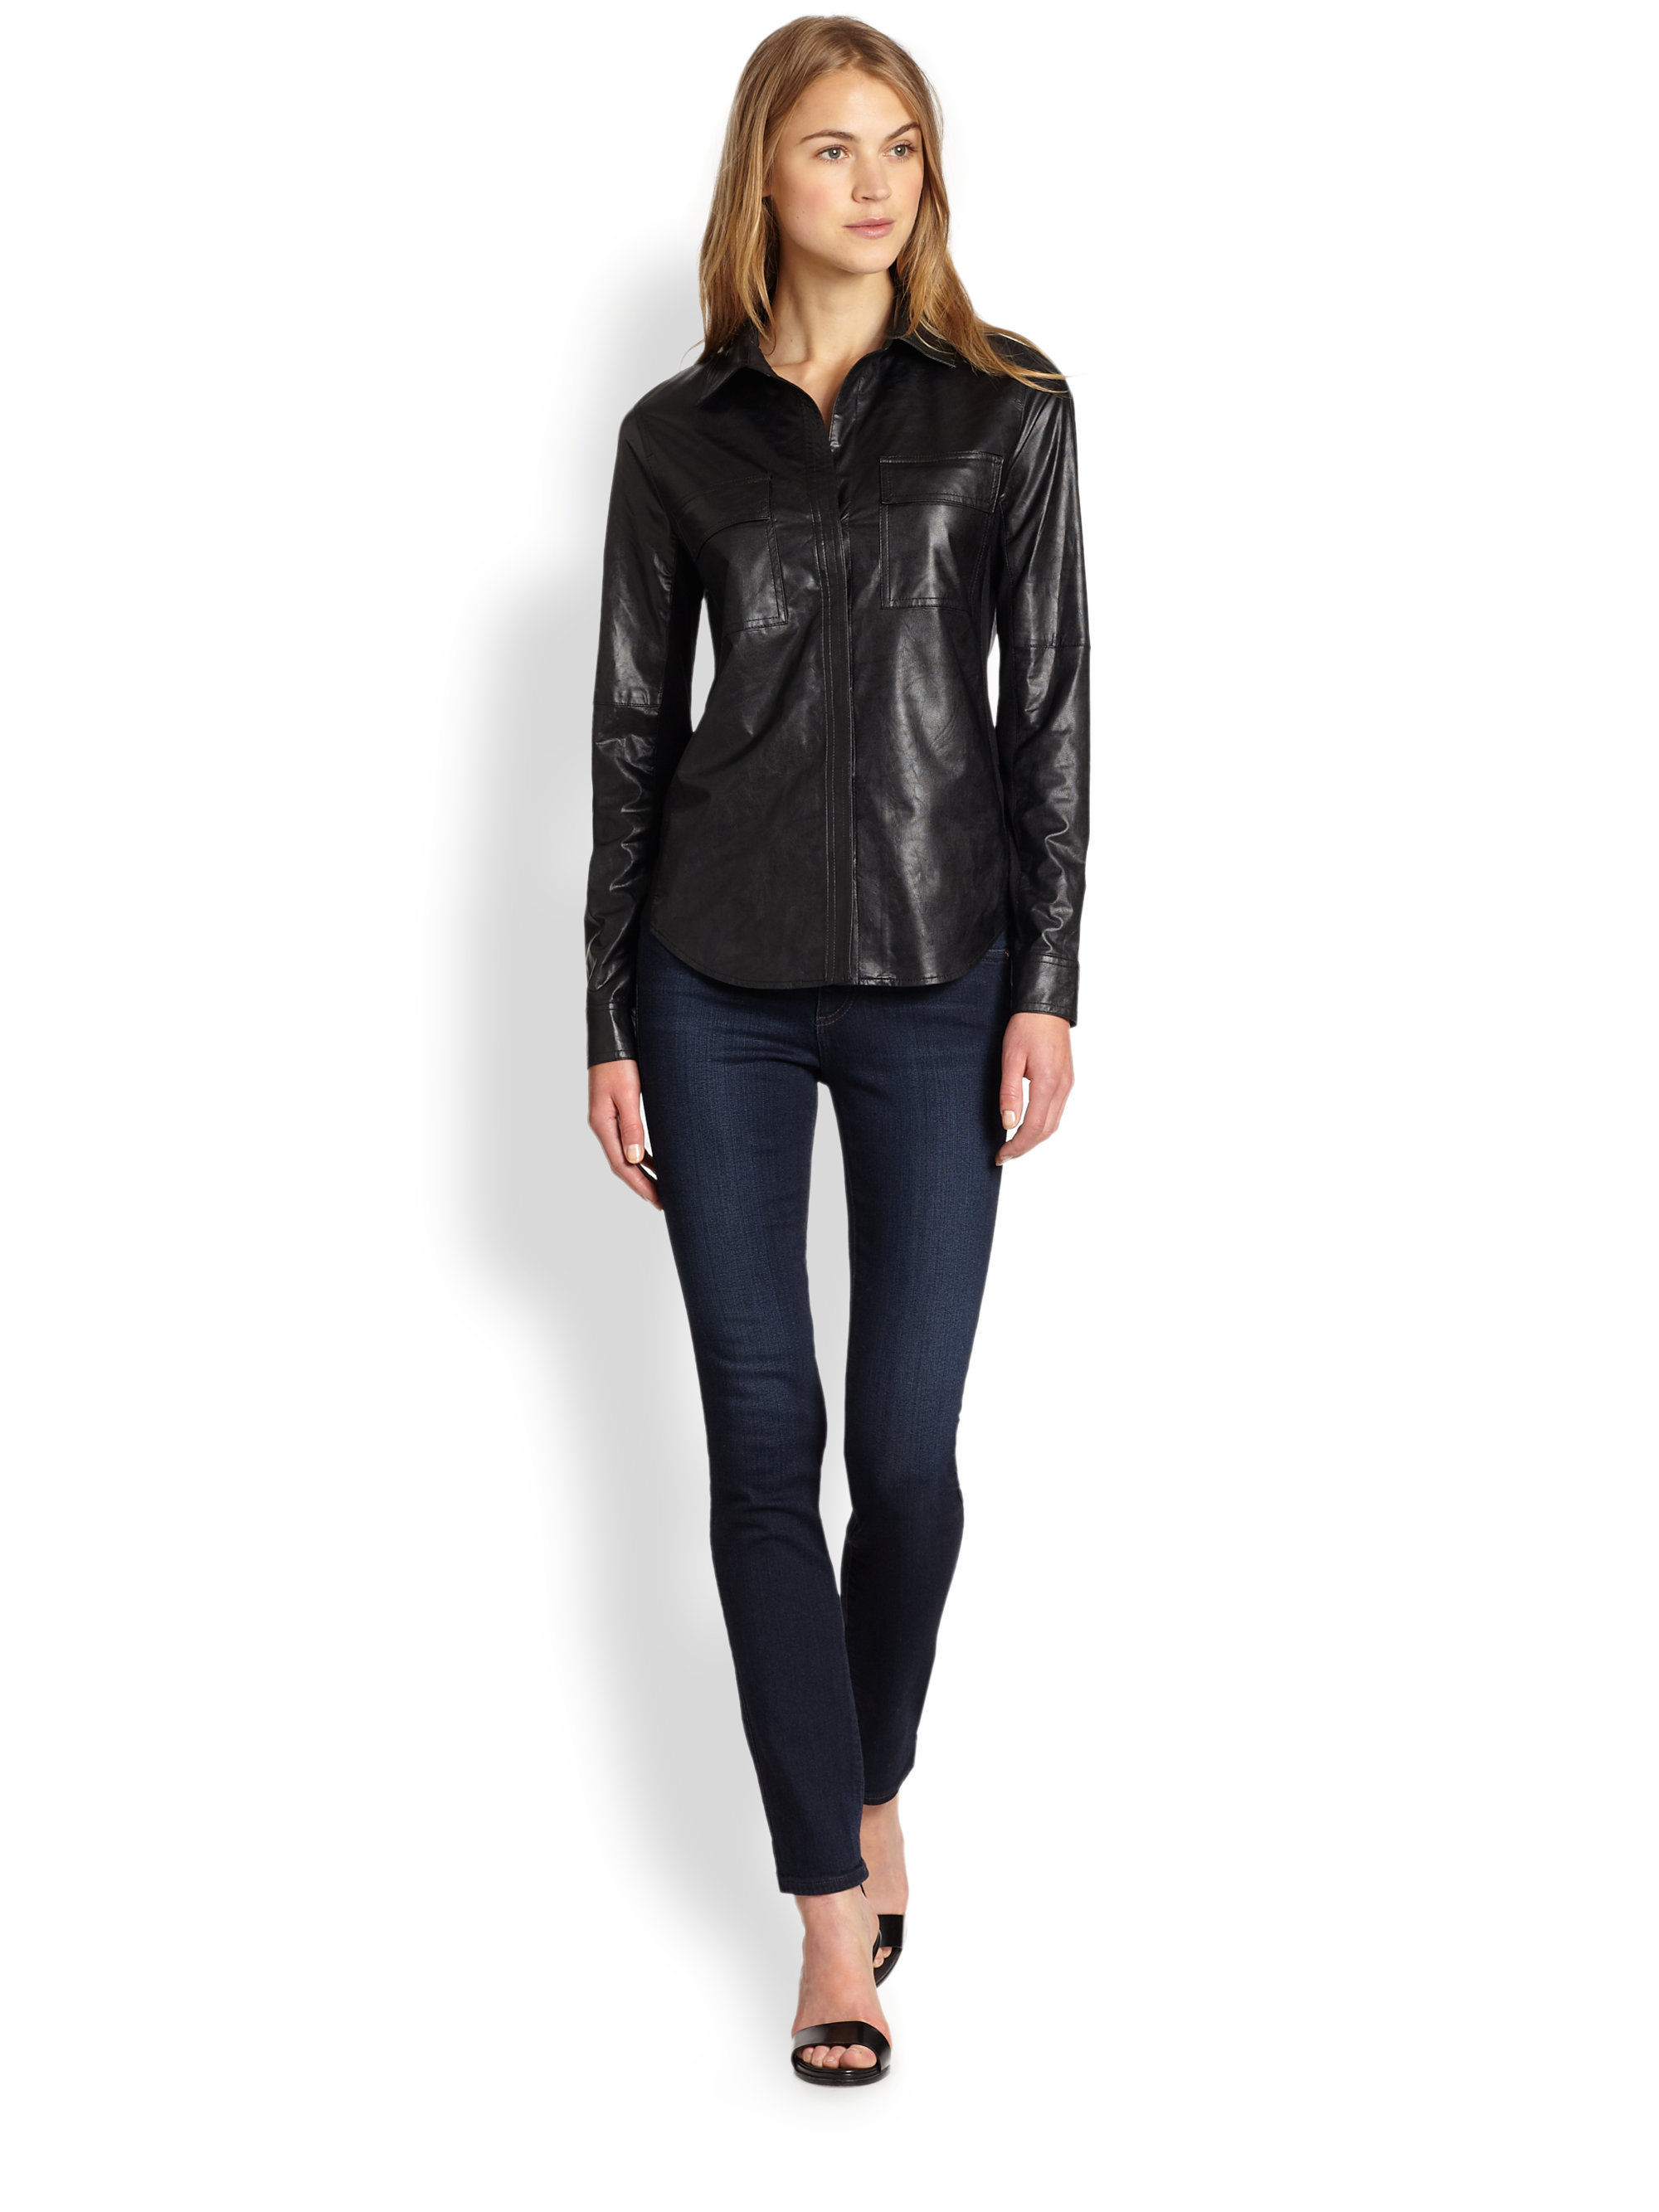 Lyst bcbgmaxazria faux leather combo shirt in black for Red leather shirt for womens